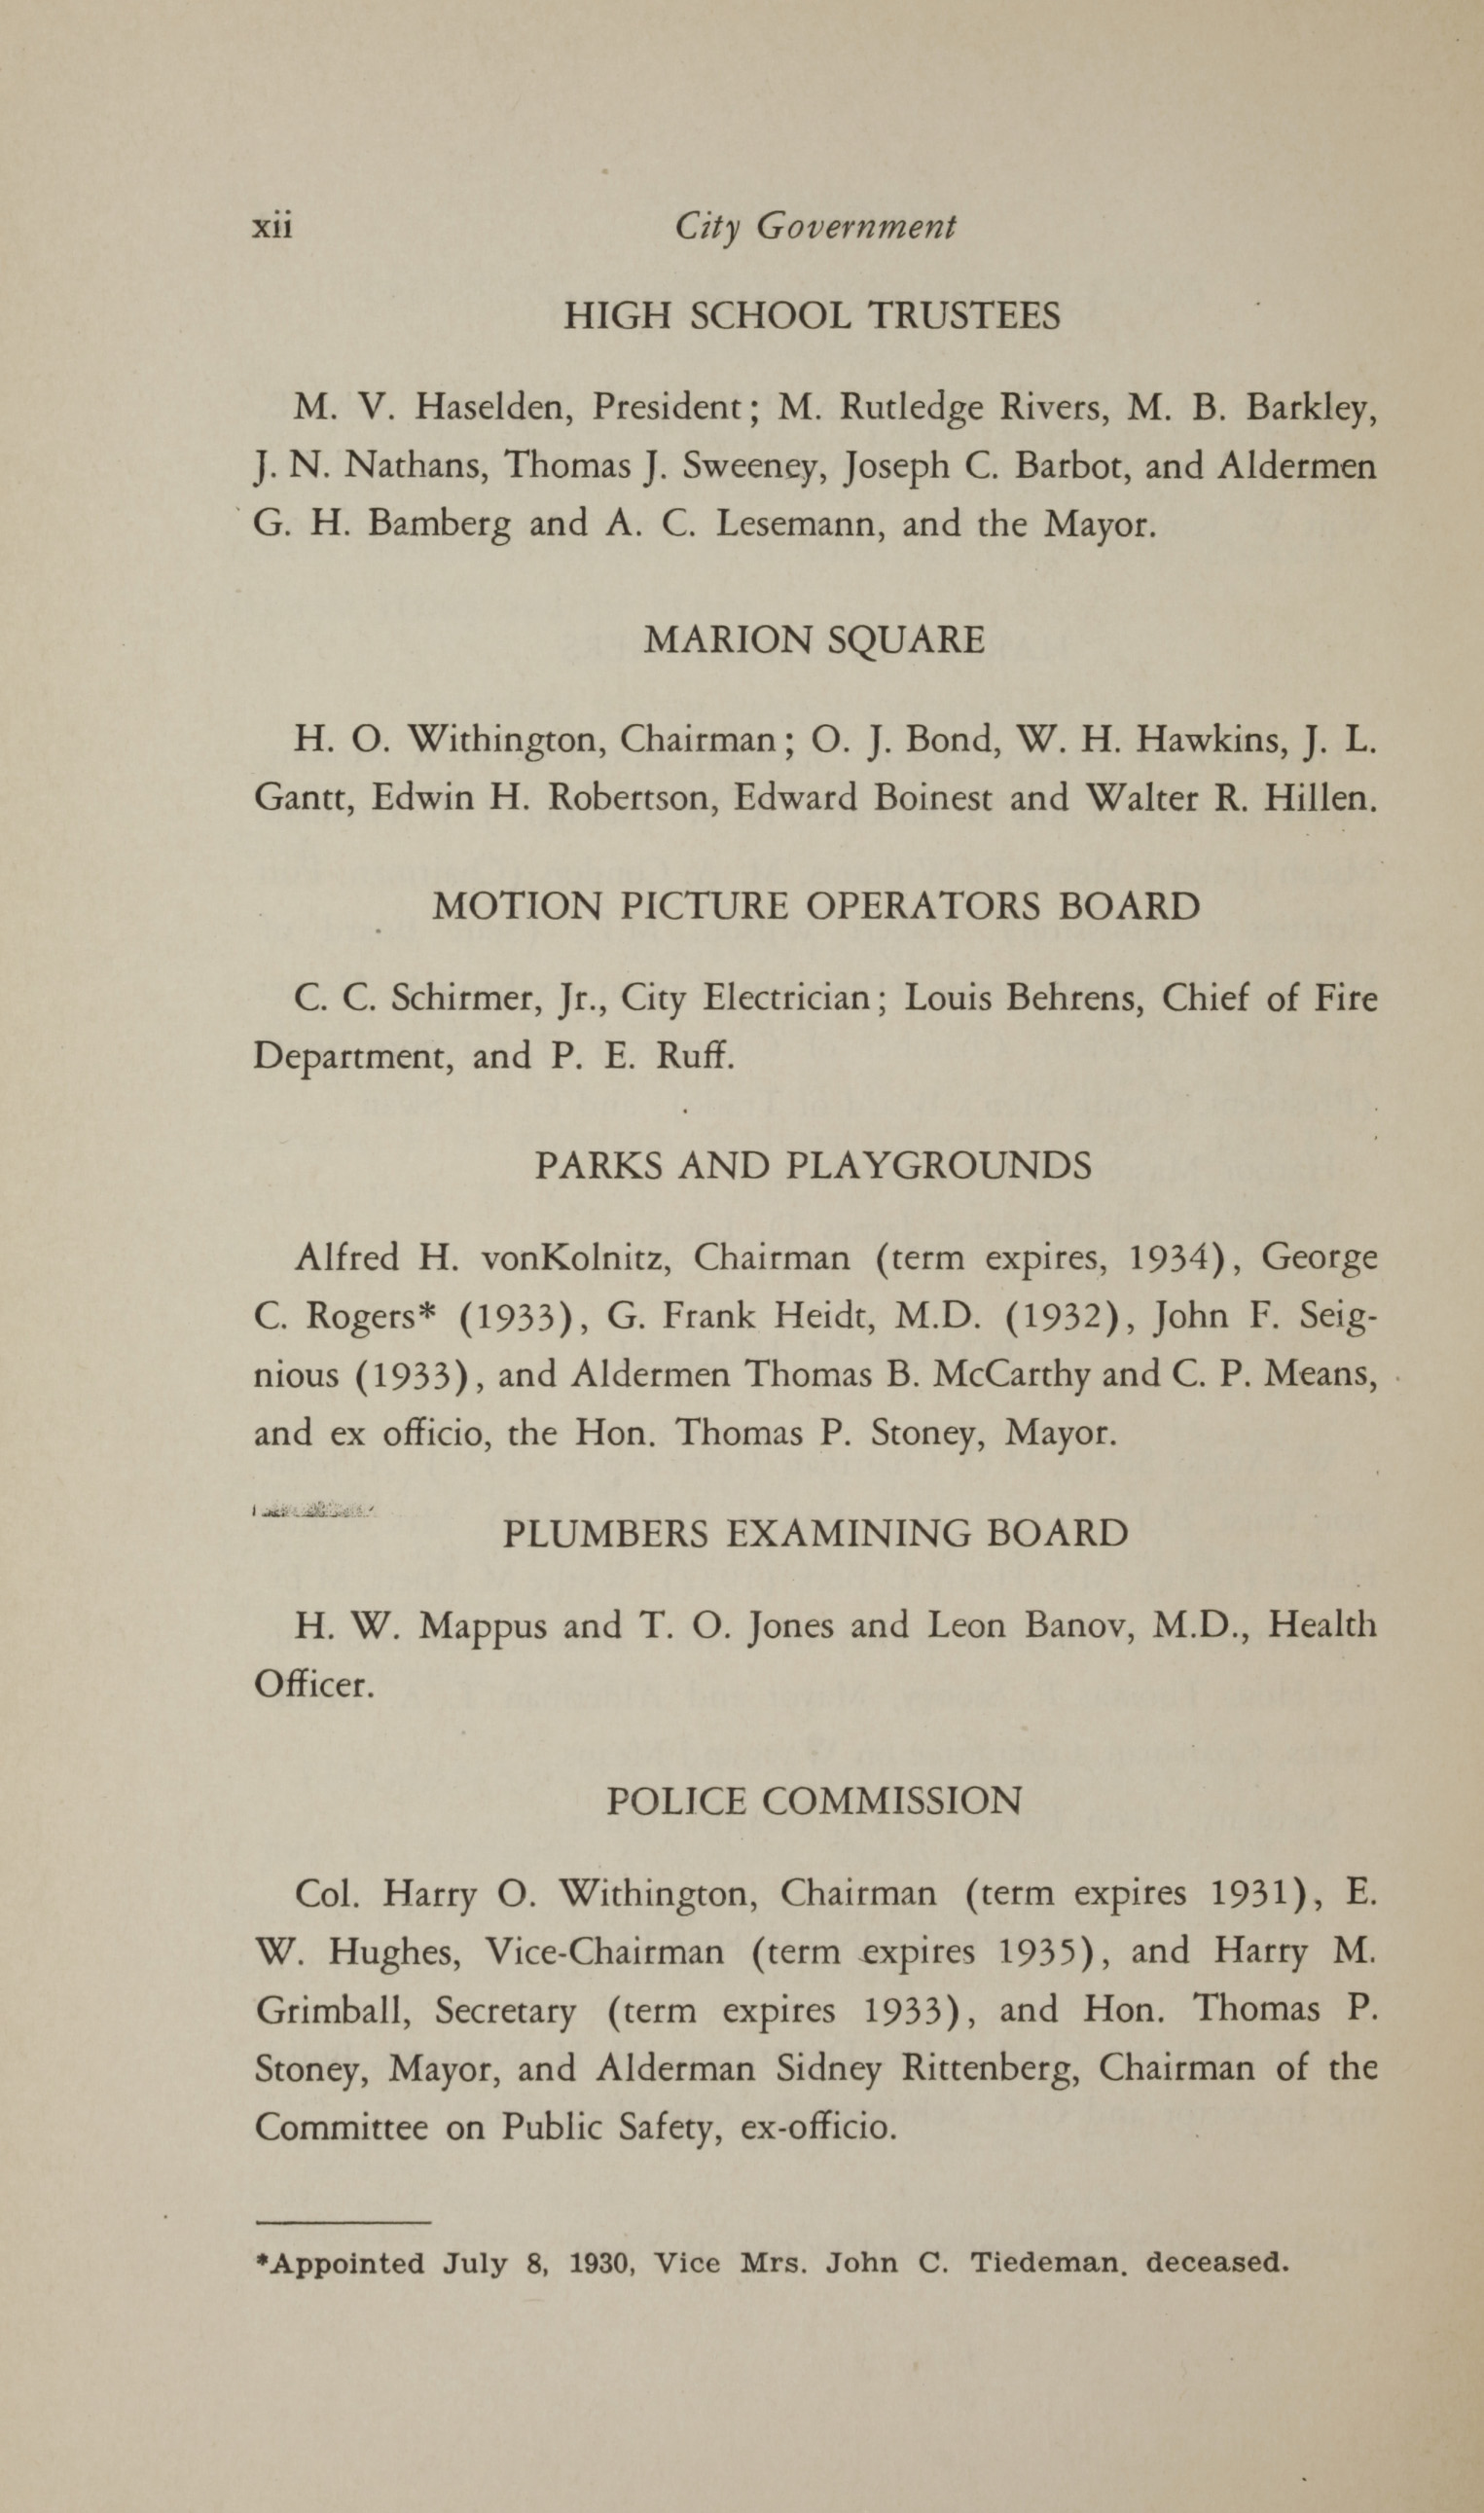 Charleston Yearbook, 1930, page xii